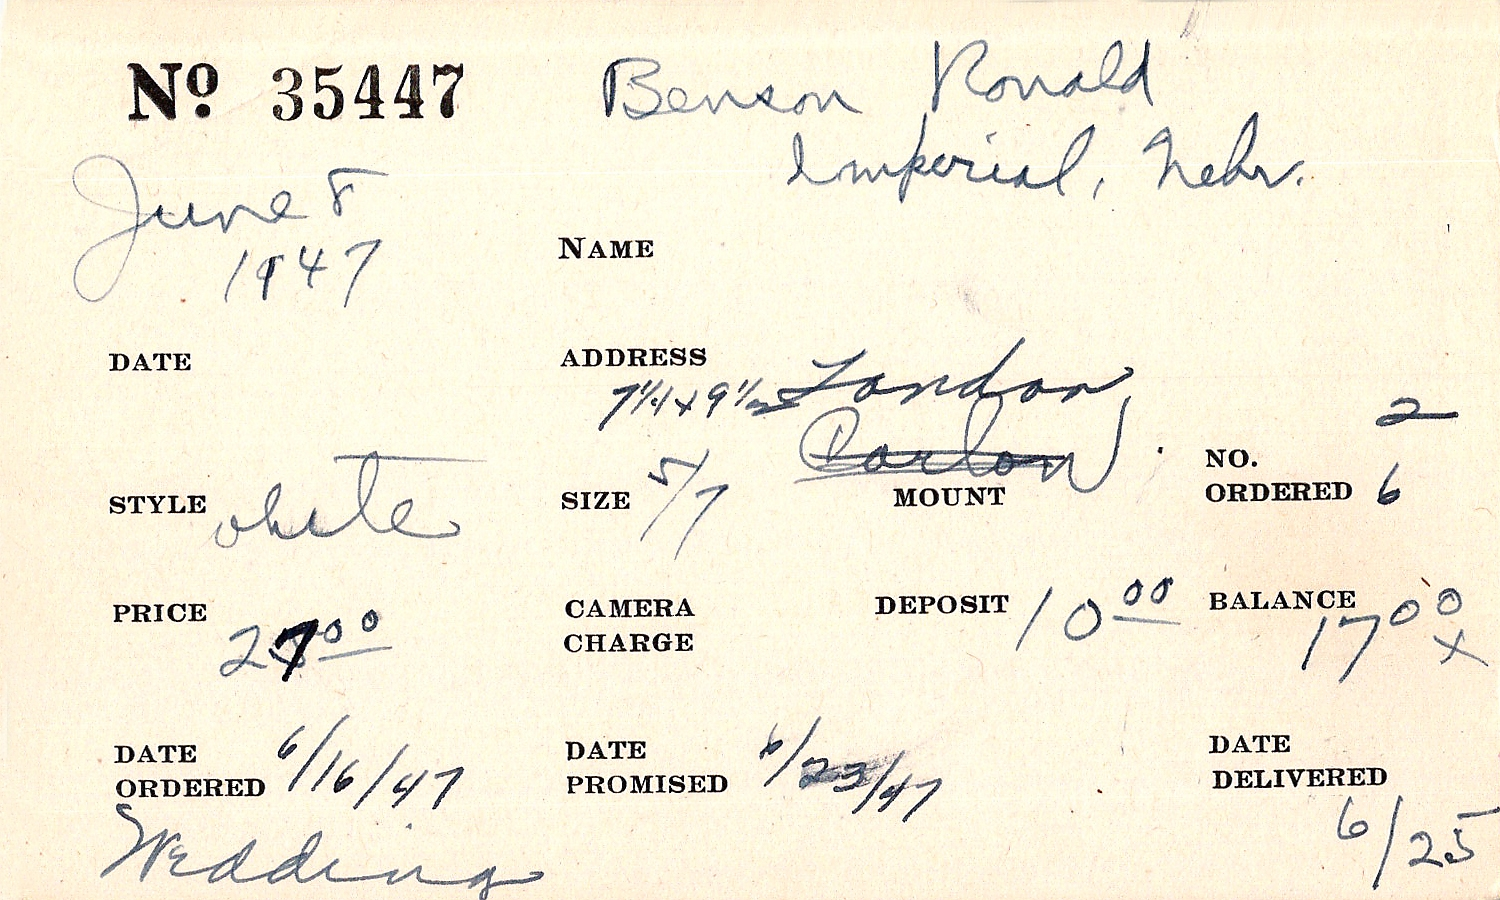 Index card for Ronald Benson